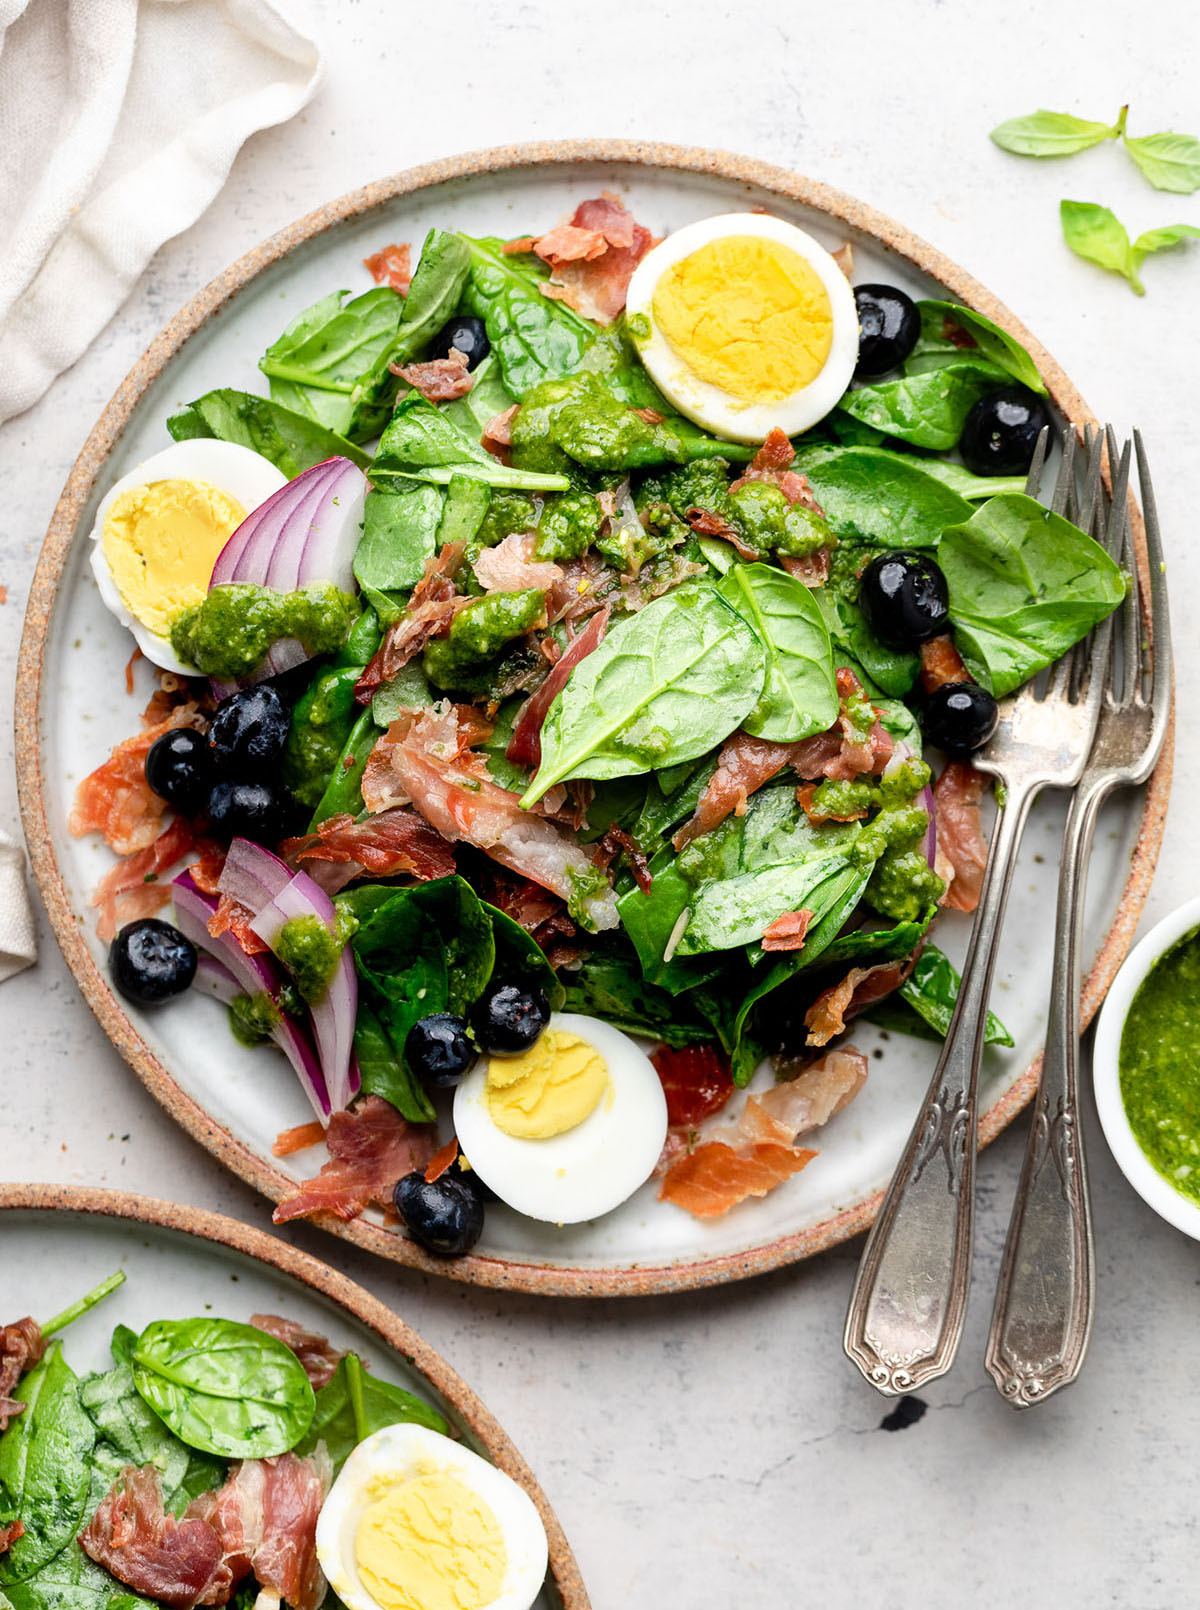 Salad topped with hard boiled eggs, red onion, and blueberries.